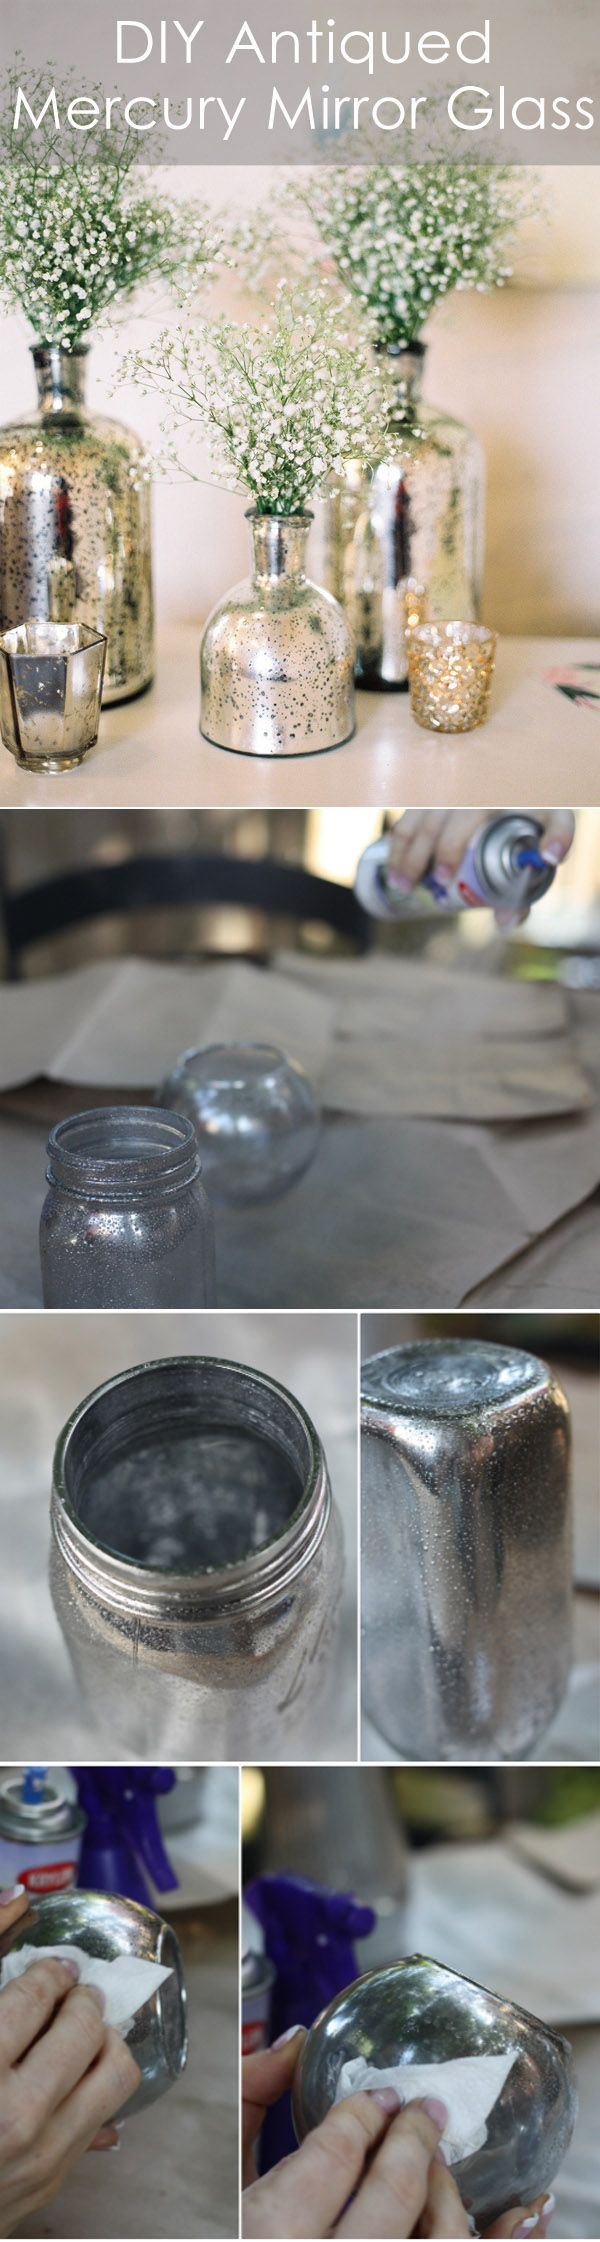 creative diy antiqued mercury mirror glass wedding centerpieces